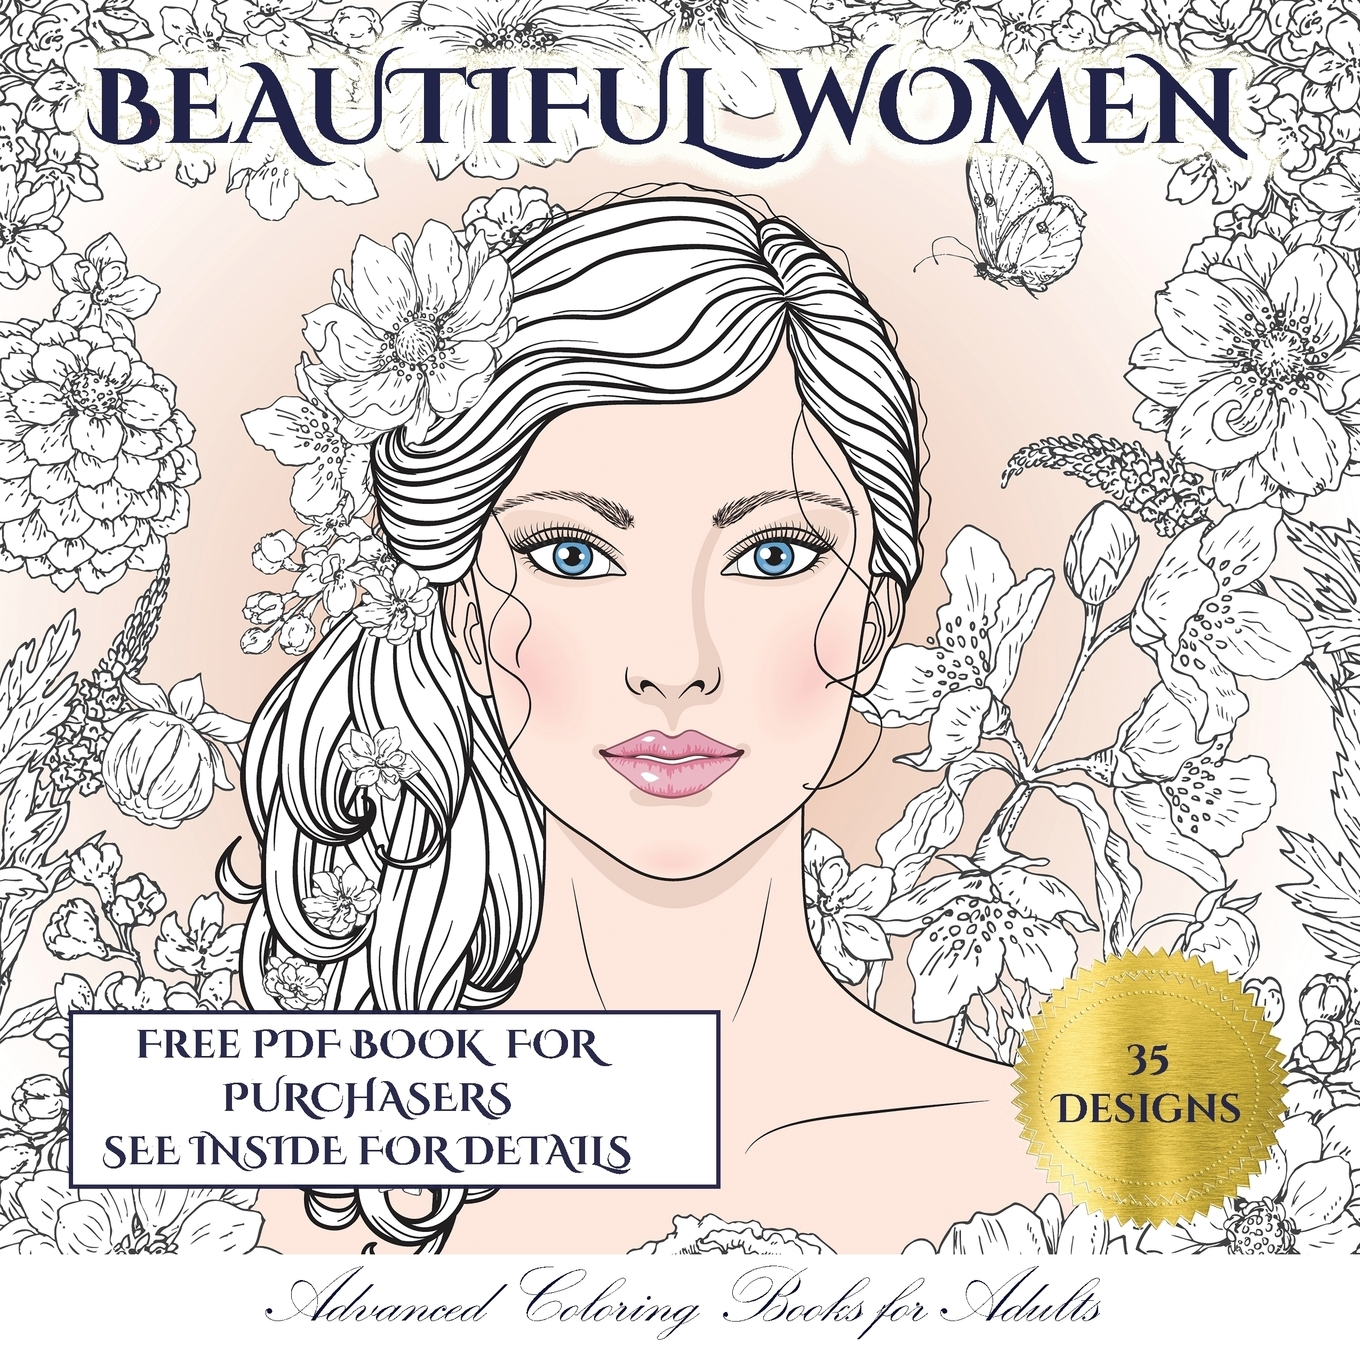 Advanced Coloring Books For Adults: Advanced Coloring Books For Adults  (Beautiful Women) : An Adult Coloring (colouring) Book With 35 Coloring  Pages: Beautiful Women (Adult Colouring (coloring) Books) (Series #4)  (Paperback) -